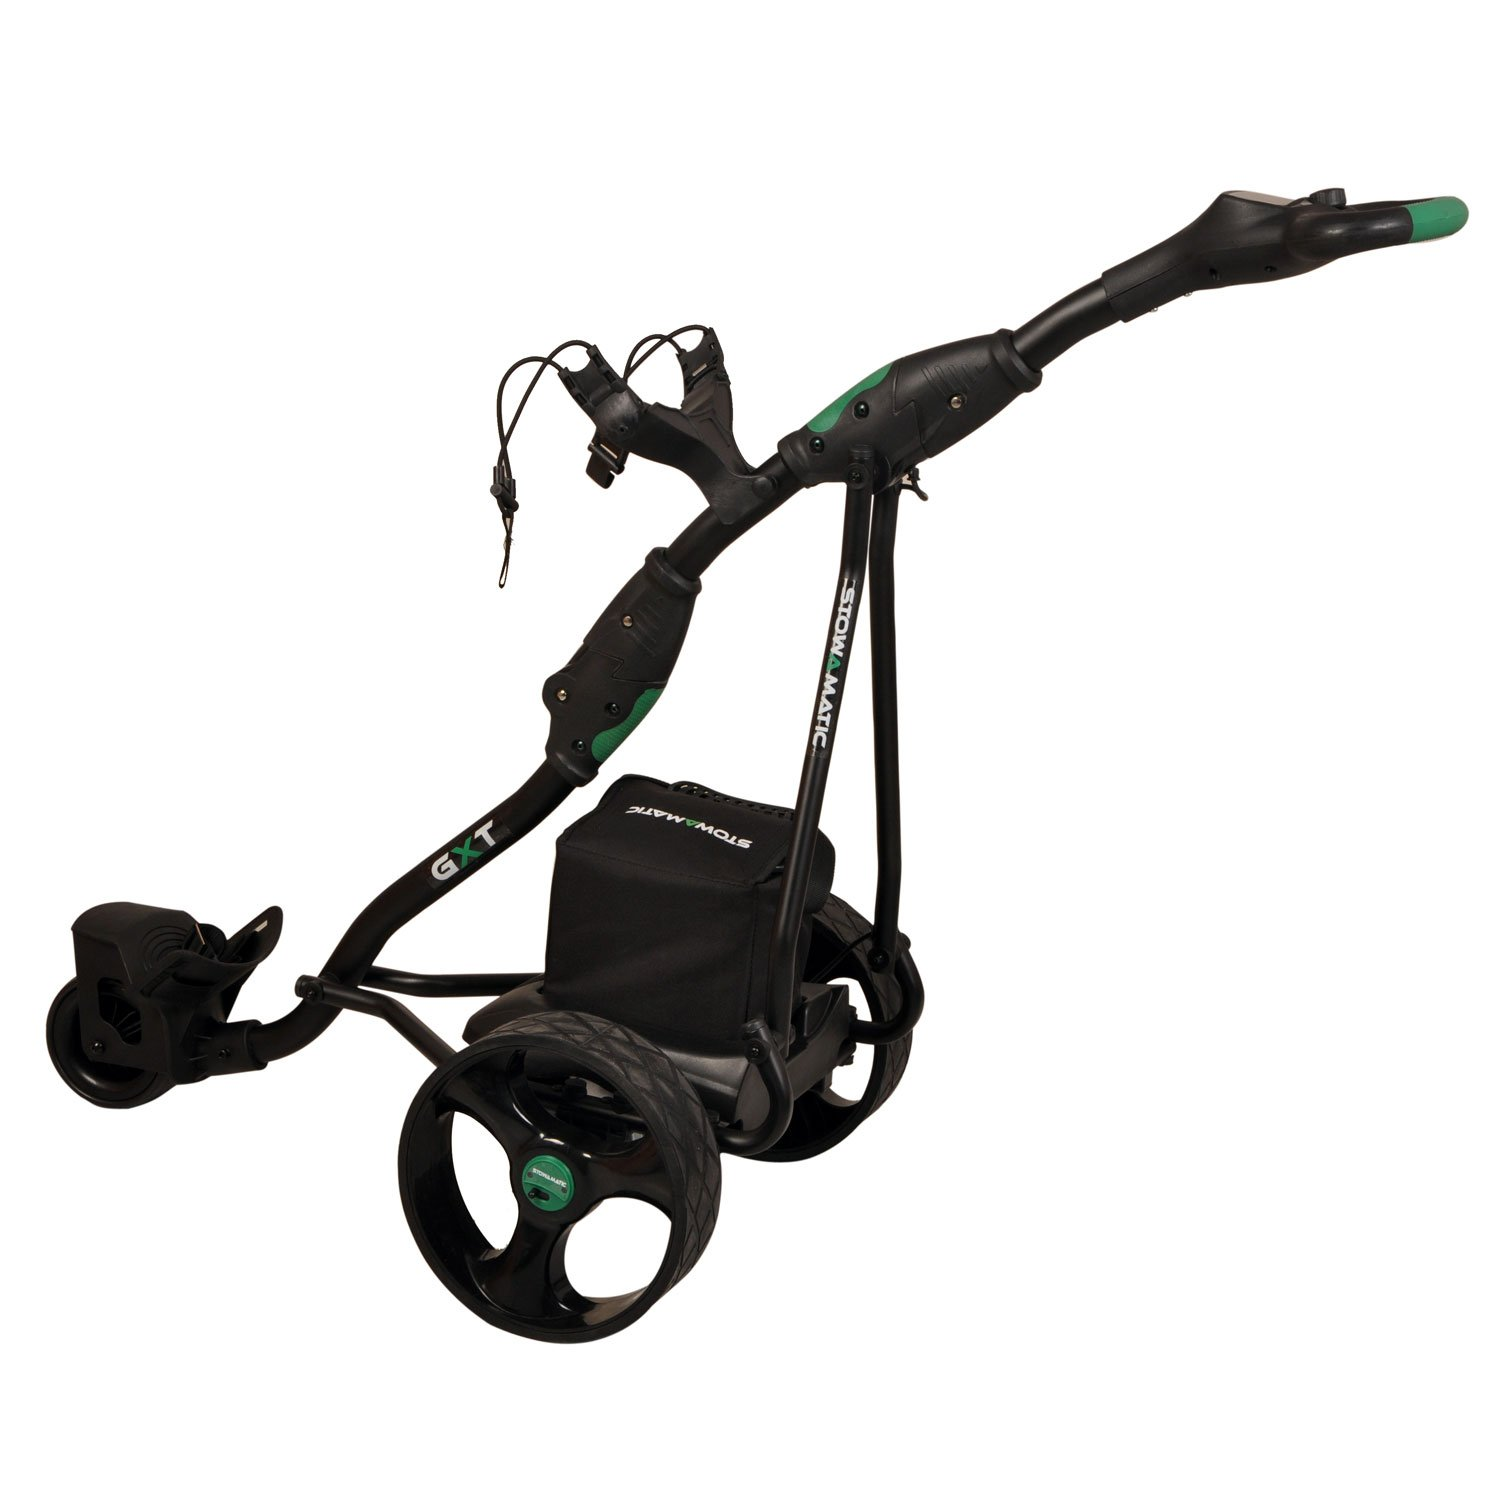 Stowamatic GXT 36 Hole Electric Golf Trolley with Carry Bag, Raincover,  Scorecard & Drinks Holder BLACK: Amazon.co.uk: Sports & Outdoors